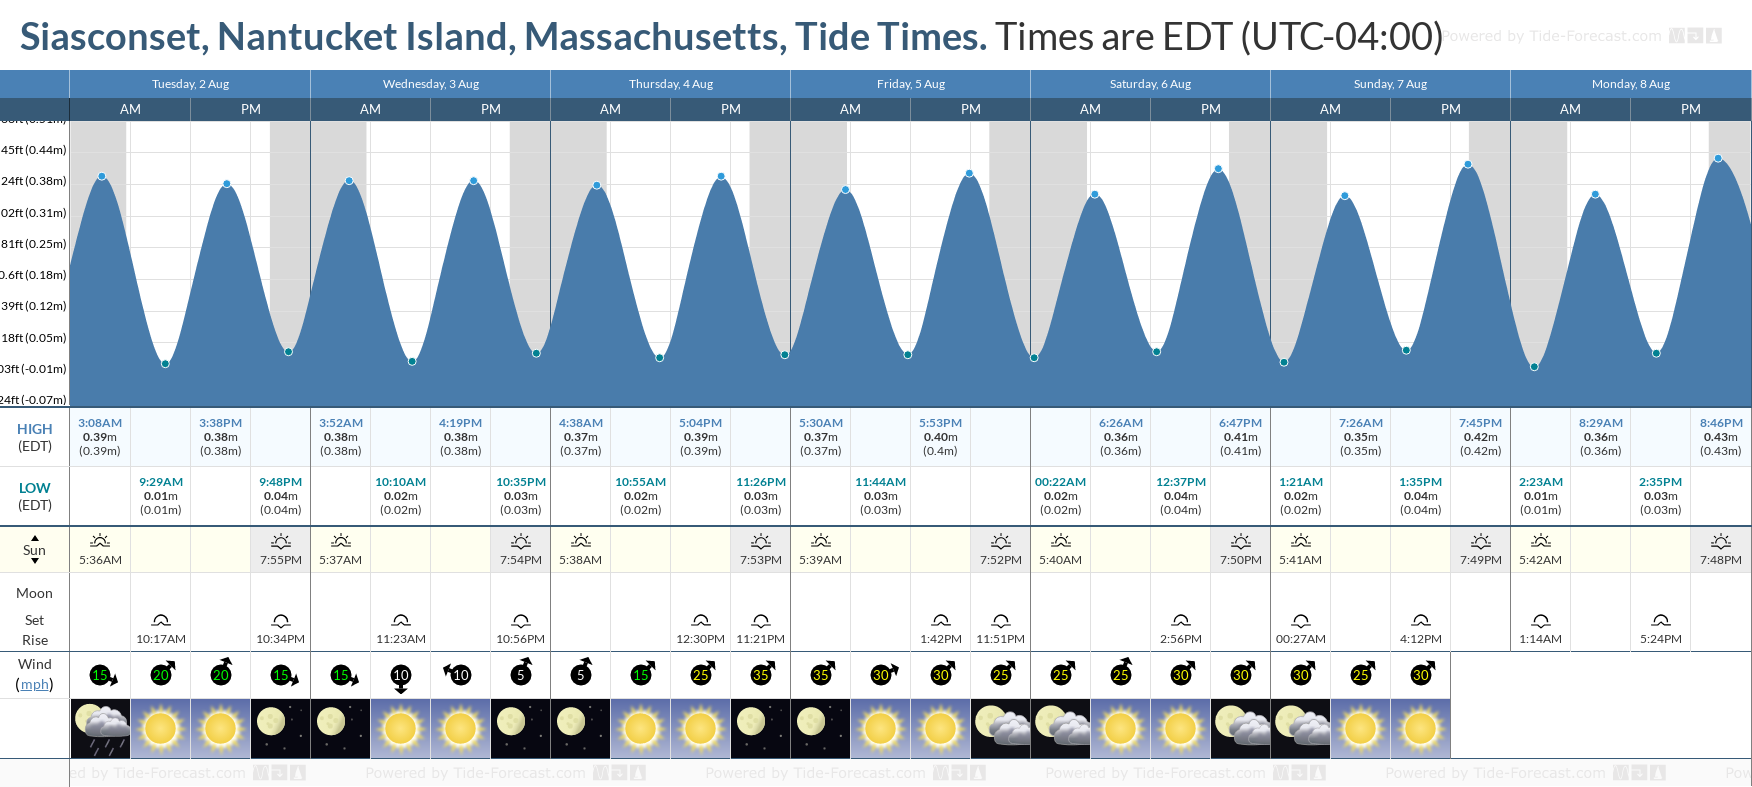 Siasconset, Nantucket Island, Massachusetts Tide Chart including high and low tide tide times for the next 7 days